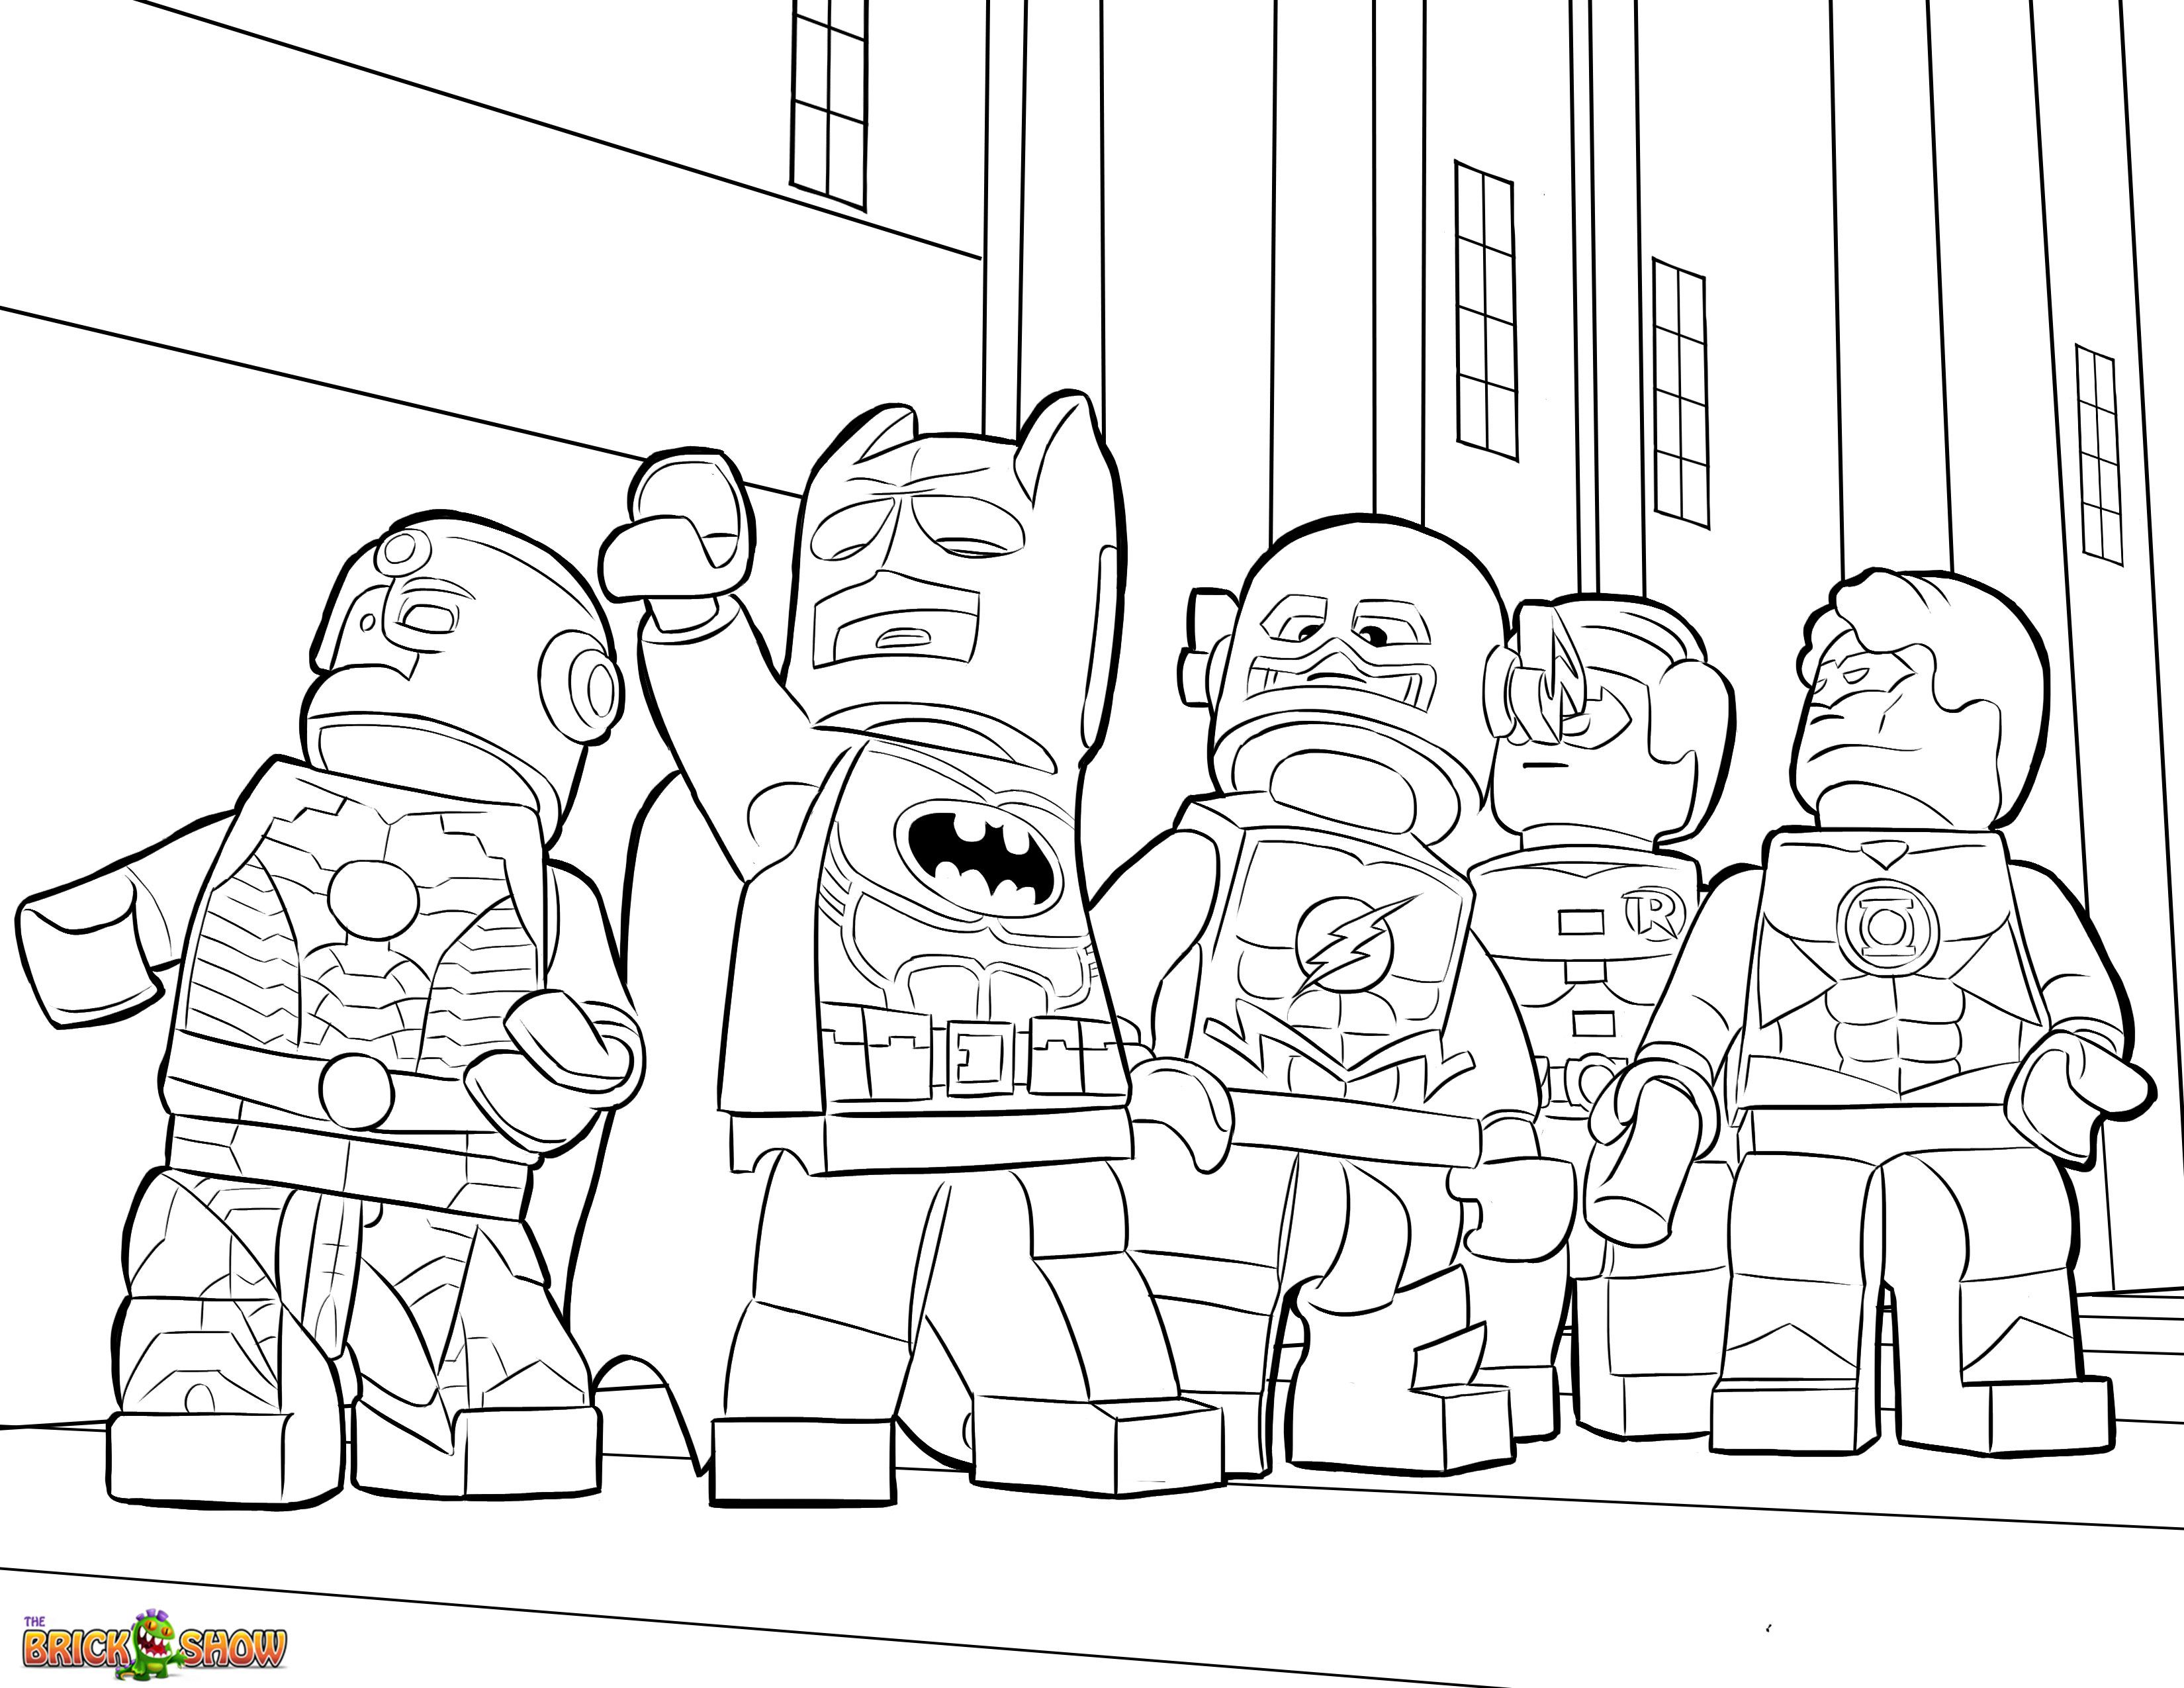 lego justice league coloring pages lego justice league coloring pages coloring home pages league coloring lego justice